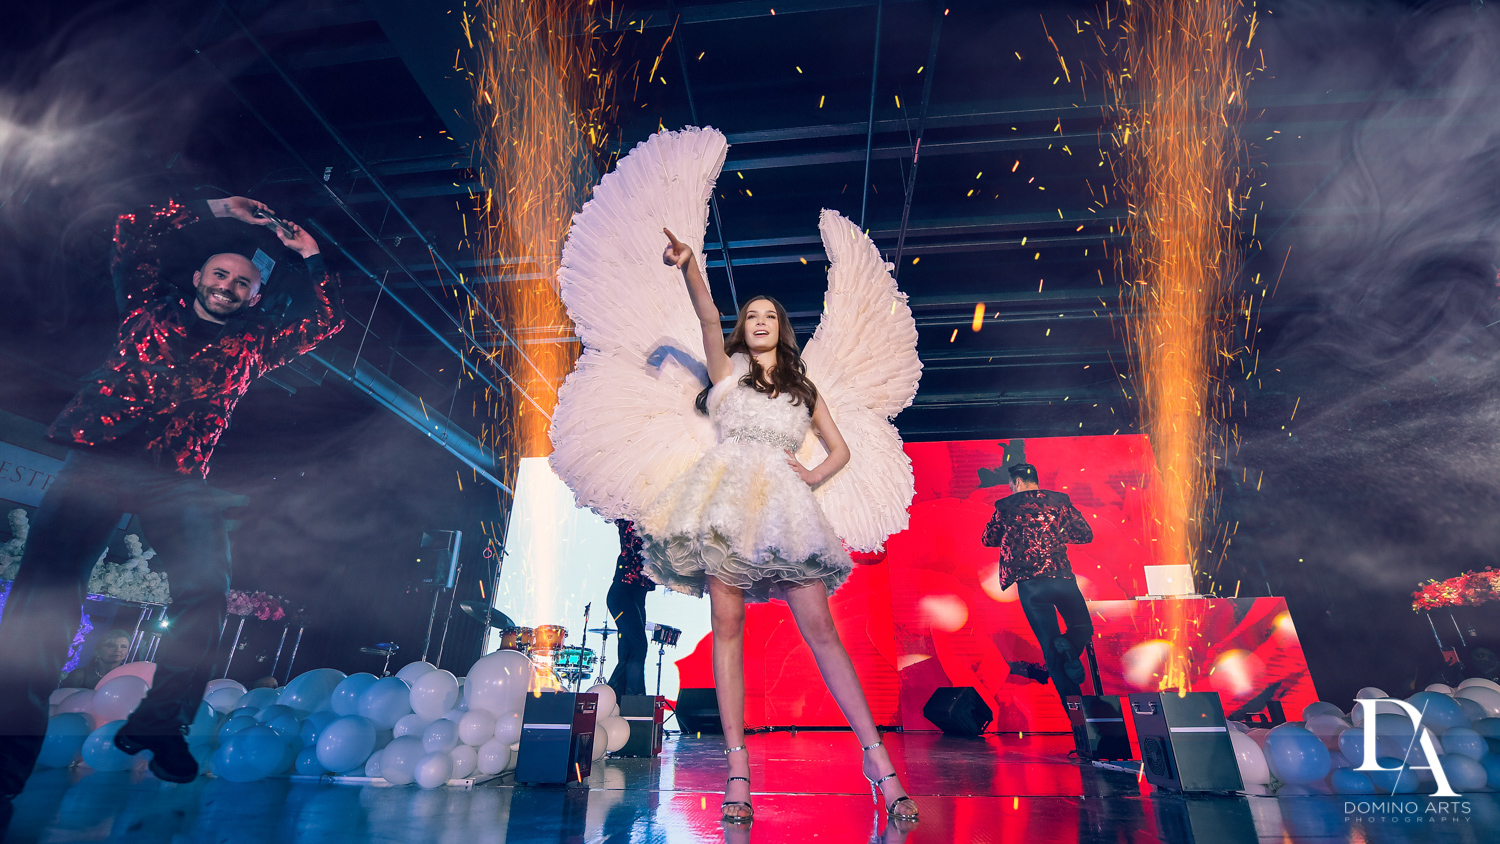 grand entrance at Fashion Theme Bat Mitzvah at Gallery of Amazing Things by Domino Arts Photography